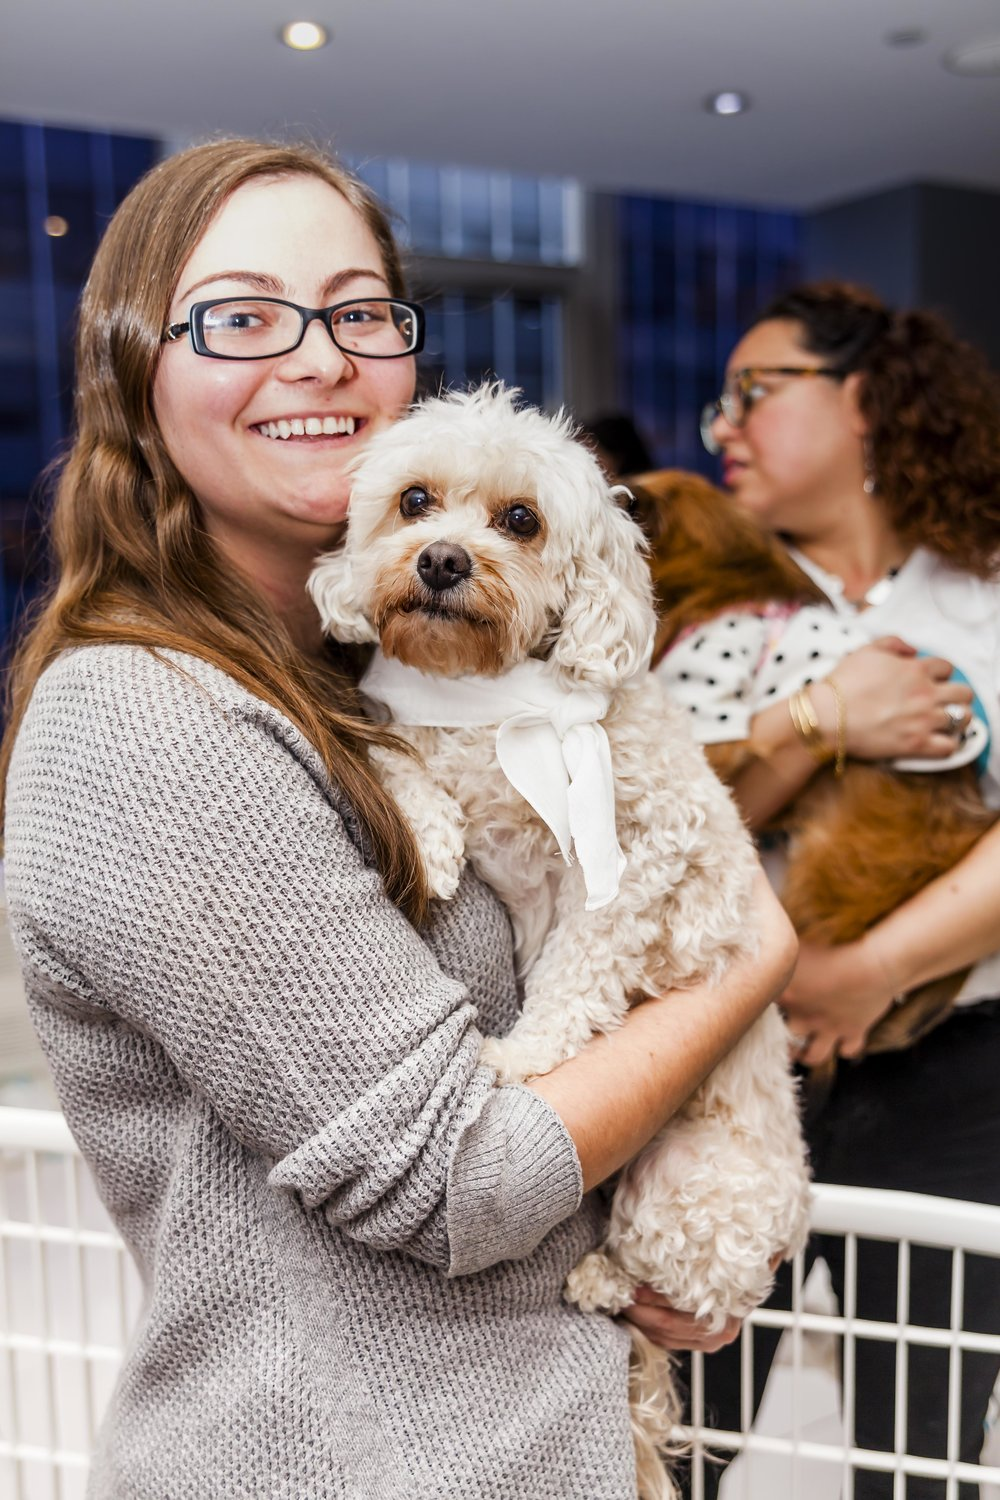 FosterDogs_DiscoveryPuppyParty_20180326_5233_©StaceyAxelrod.jpg